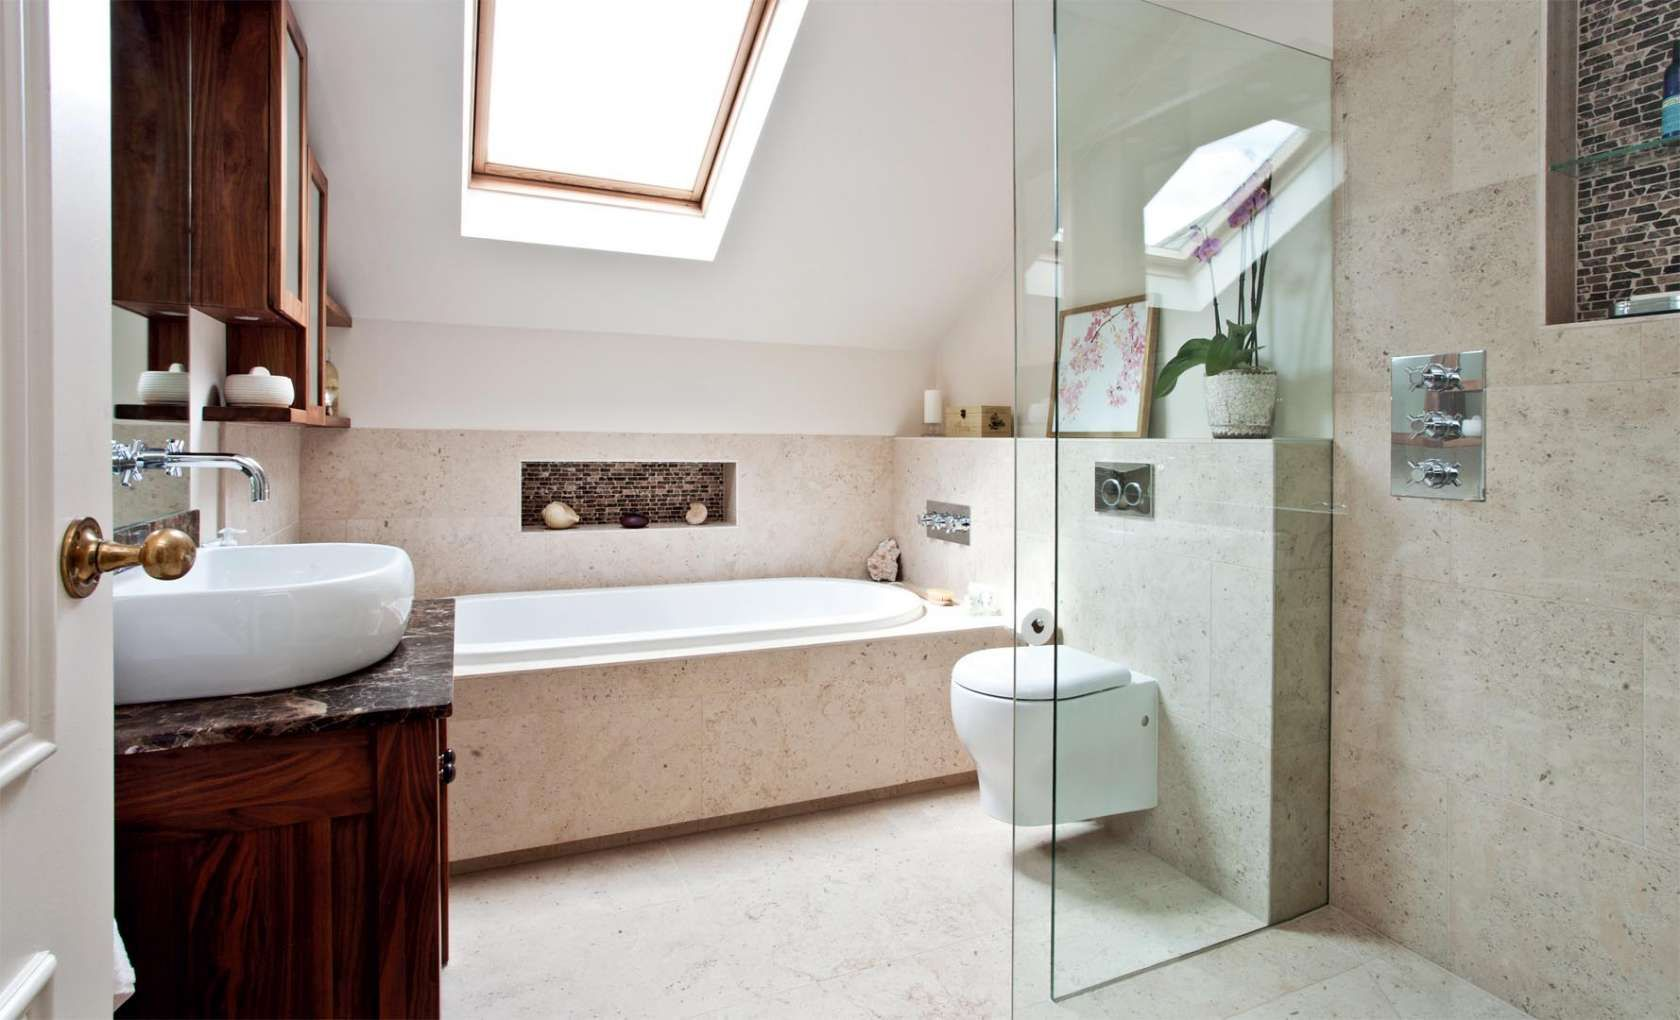 bath under sloping ceiling - Google Search | come on in | Pinterest ...